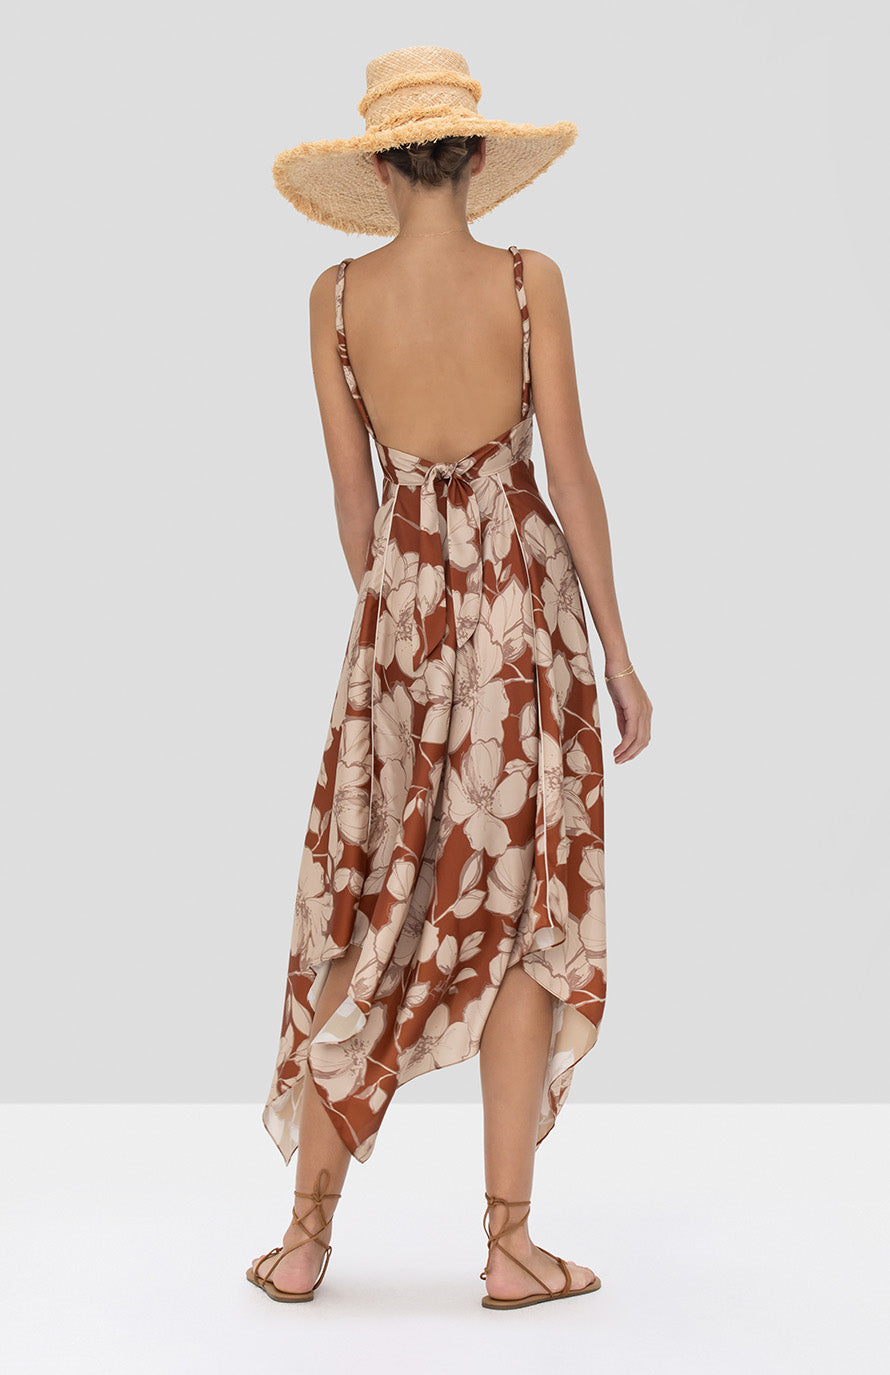 Alexis Gaiana Dress in Sand Floral from the Spring Summer 2020 Collection - Rear View